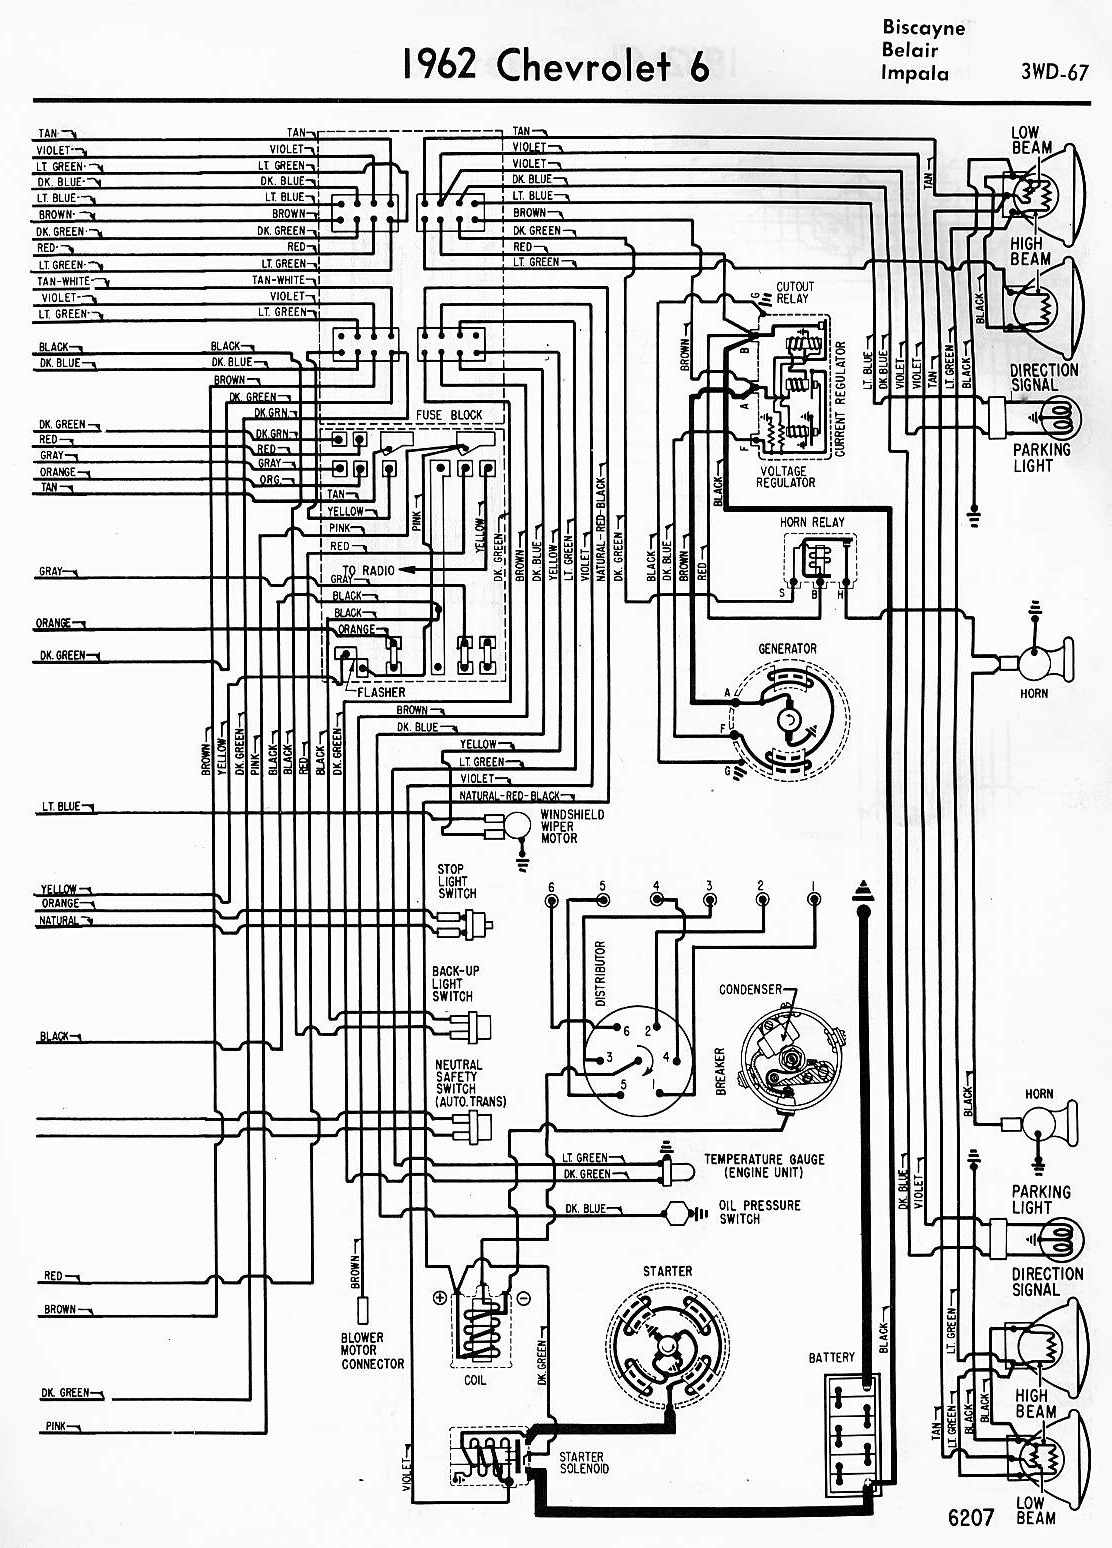 Electrical+Wiring+Diagram+Of+1964+Chevrolet+6 2011 impala wiring diagram 2005 impala ignition wiring diagram 66 Impala Charging Wiring at bayanpartner.co